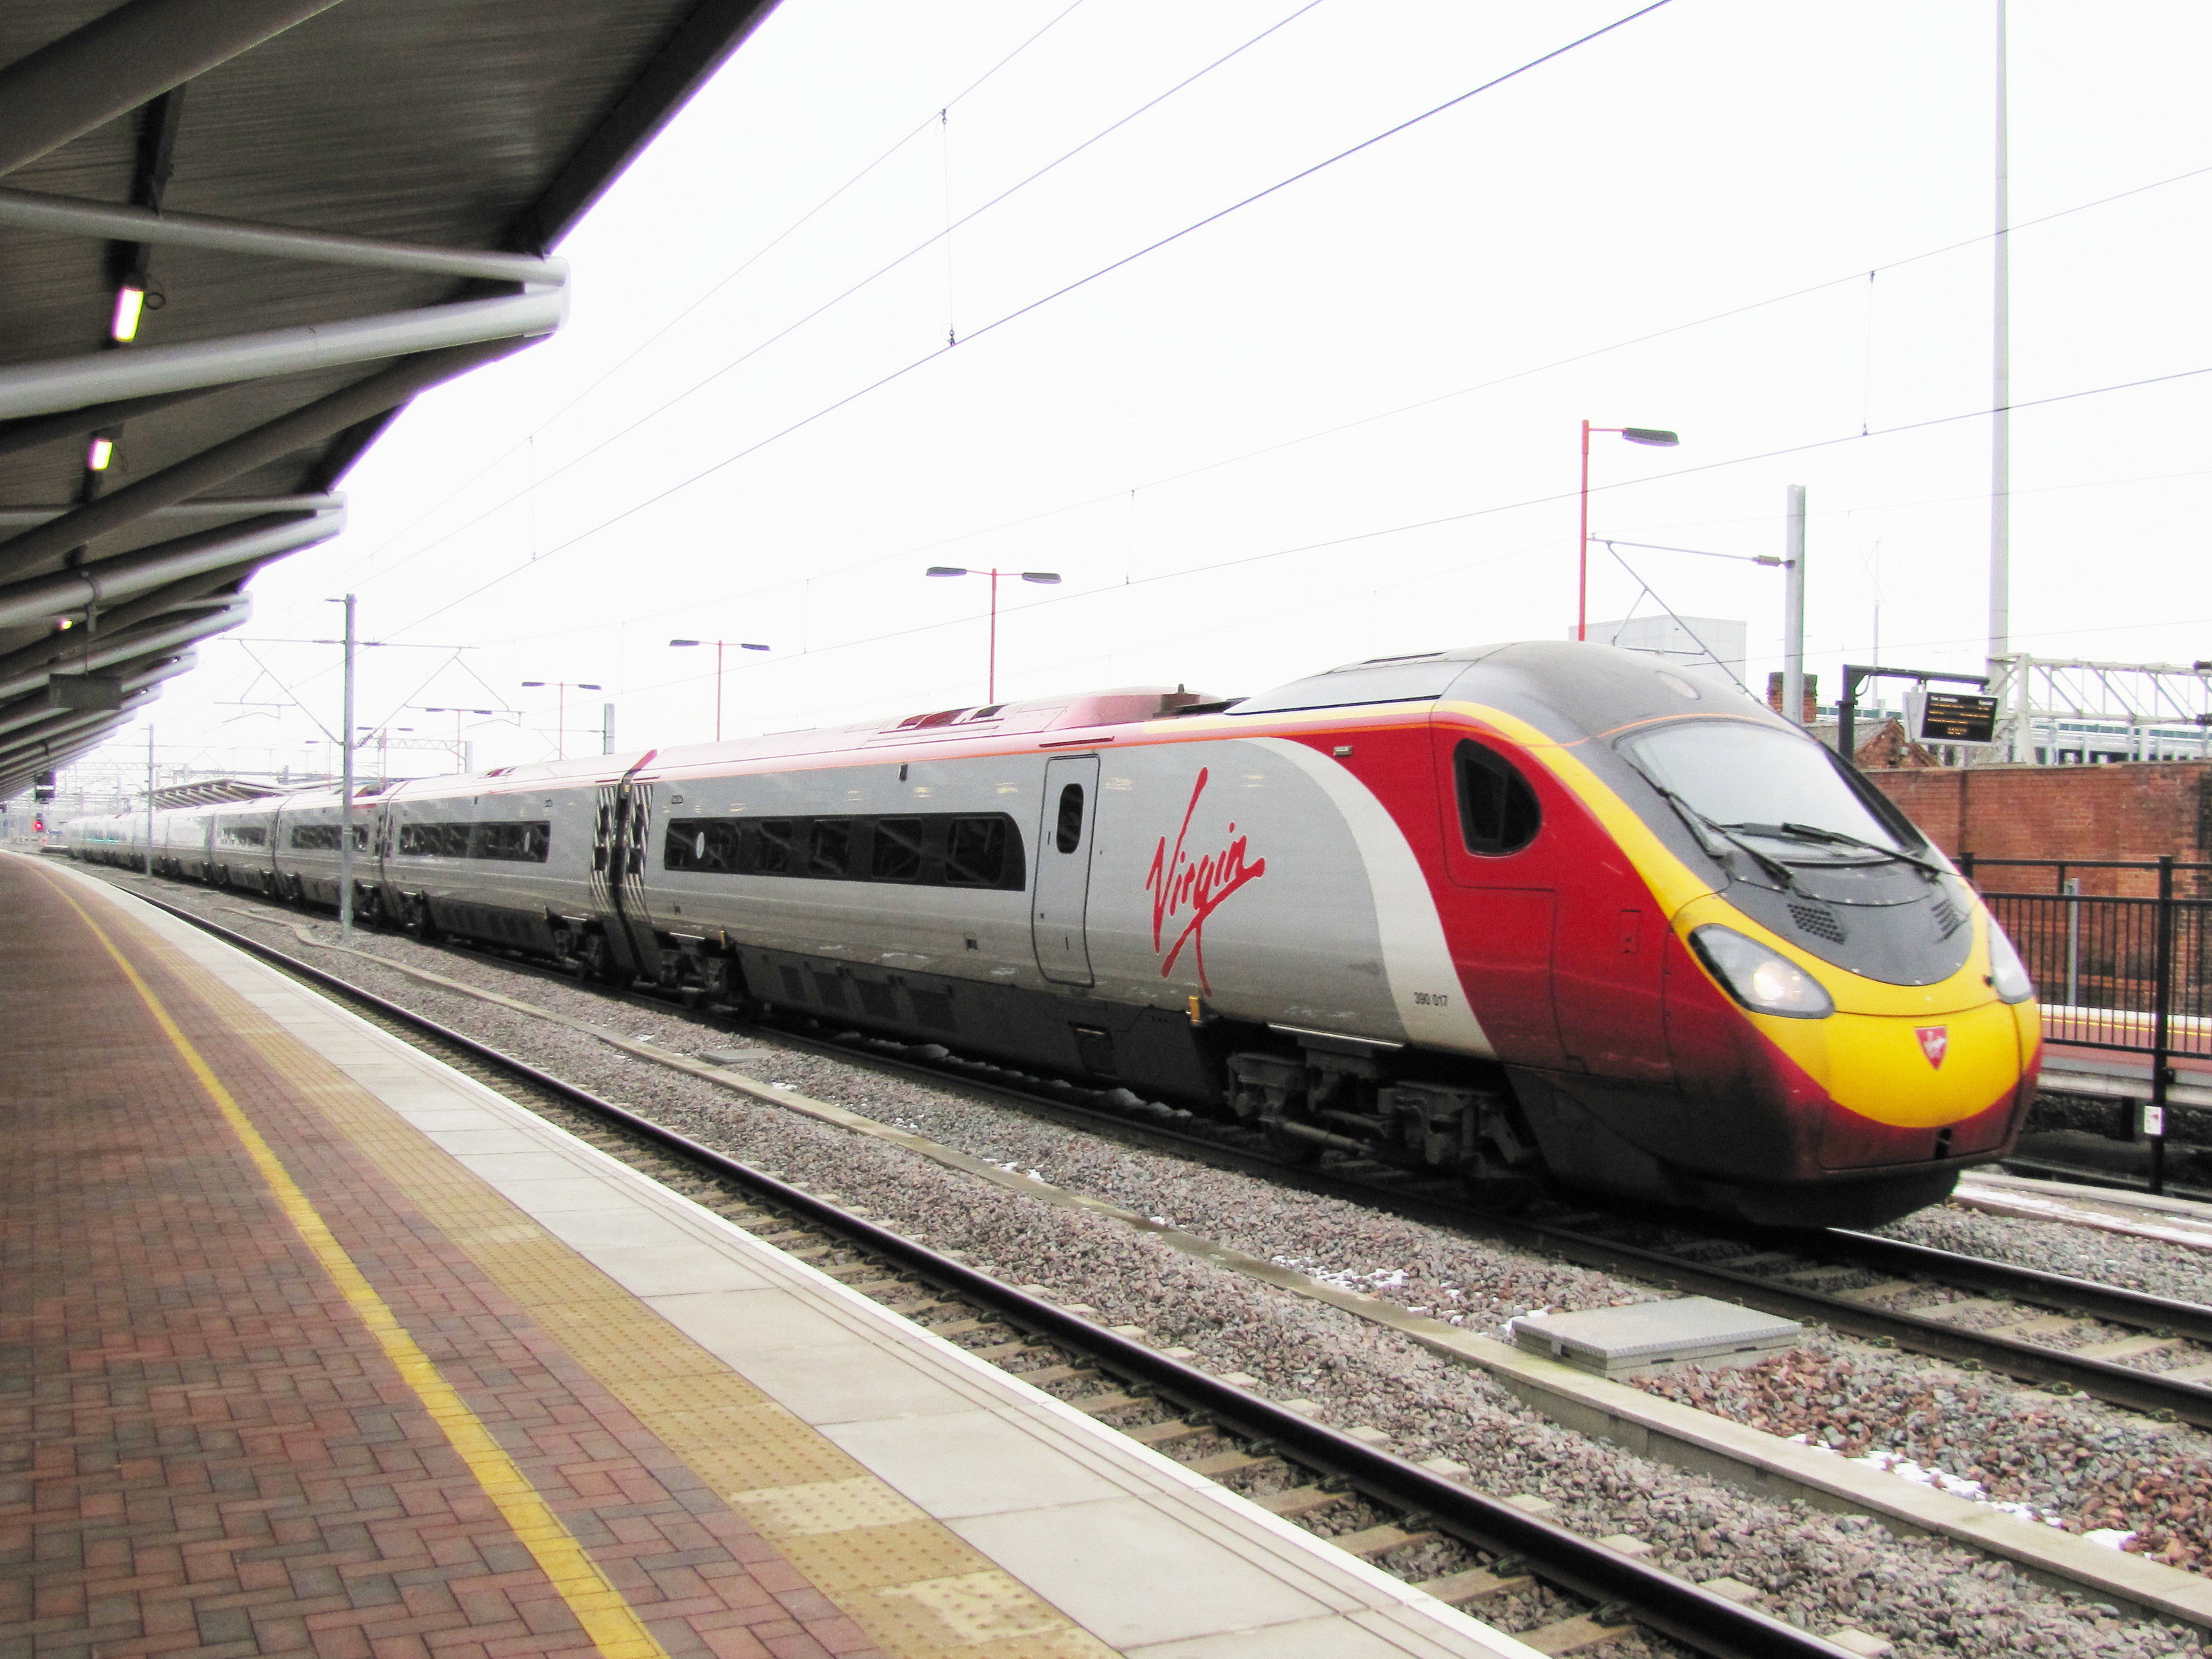 tilting trains Virgin trains wanted state-of-the-art tilting trains to offer its passengers a faster, more comfortable intercity service.